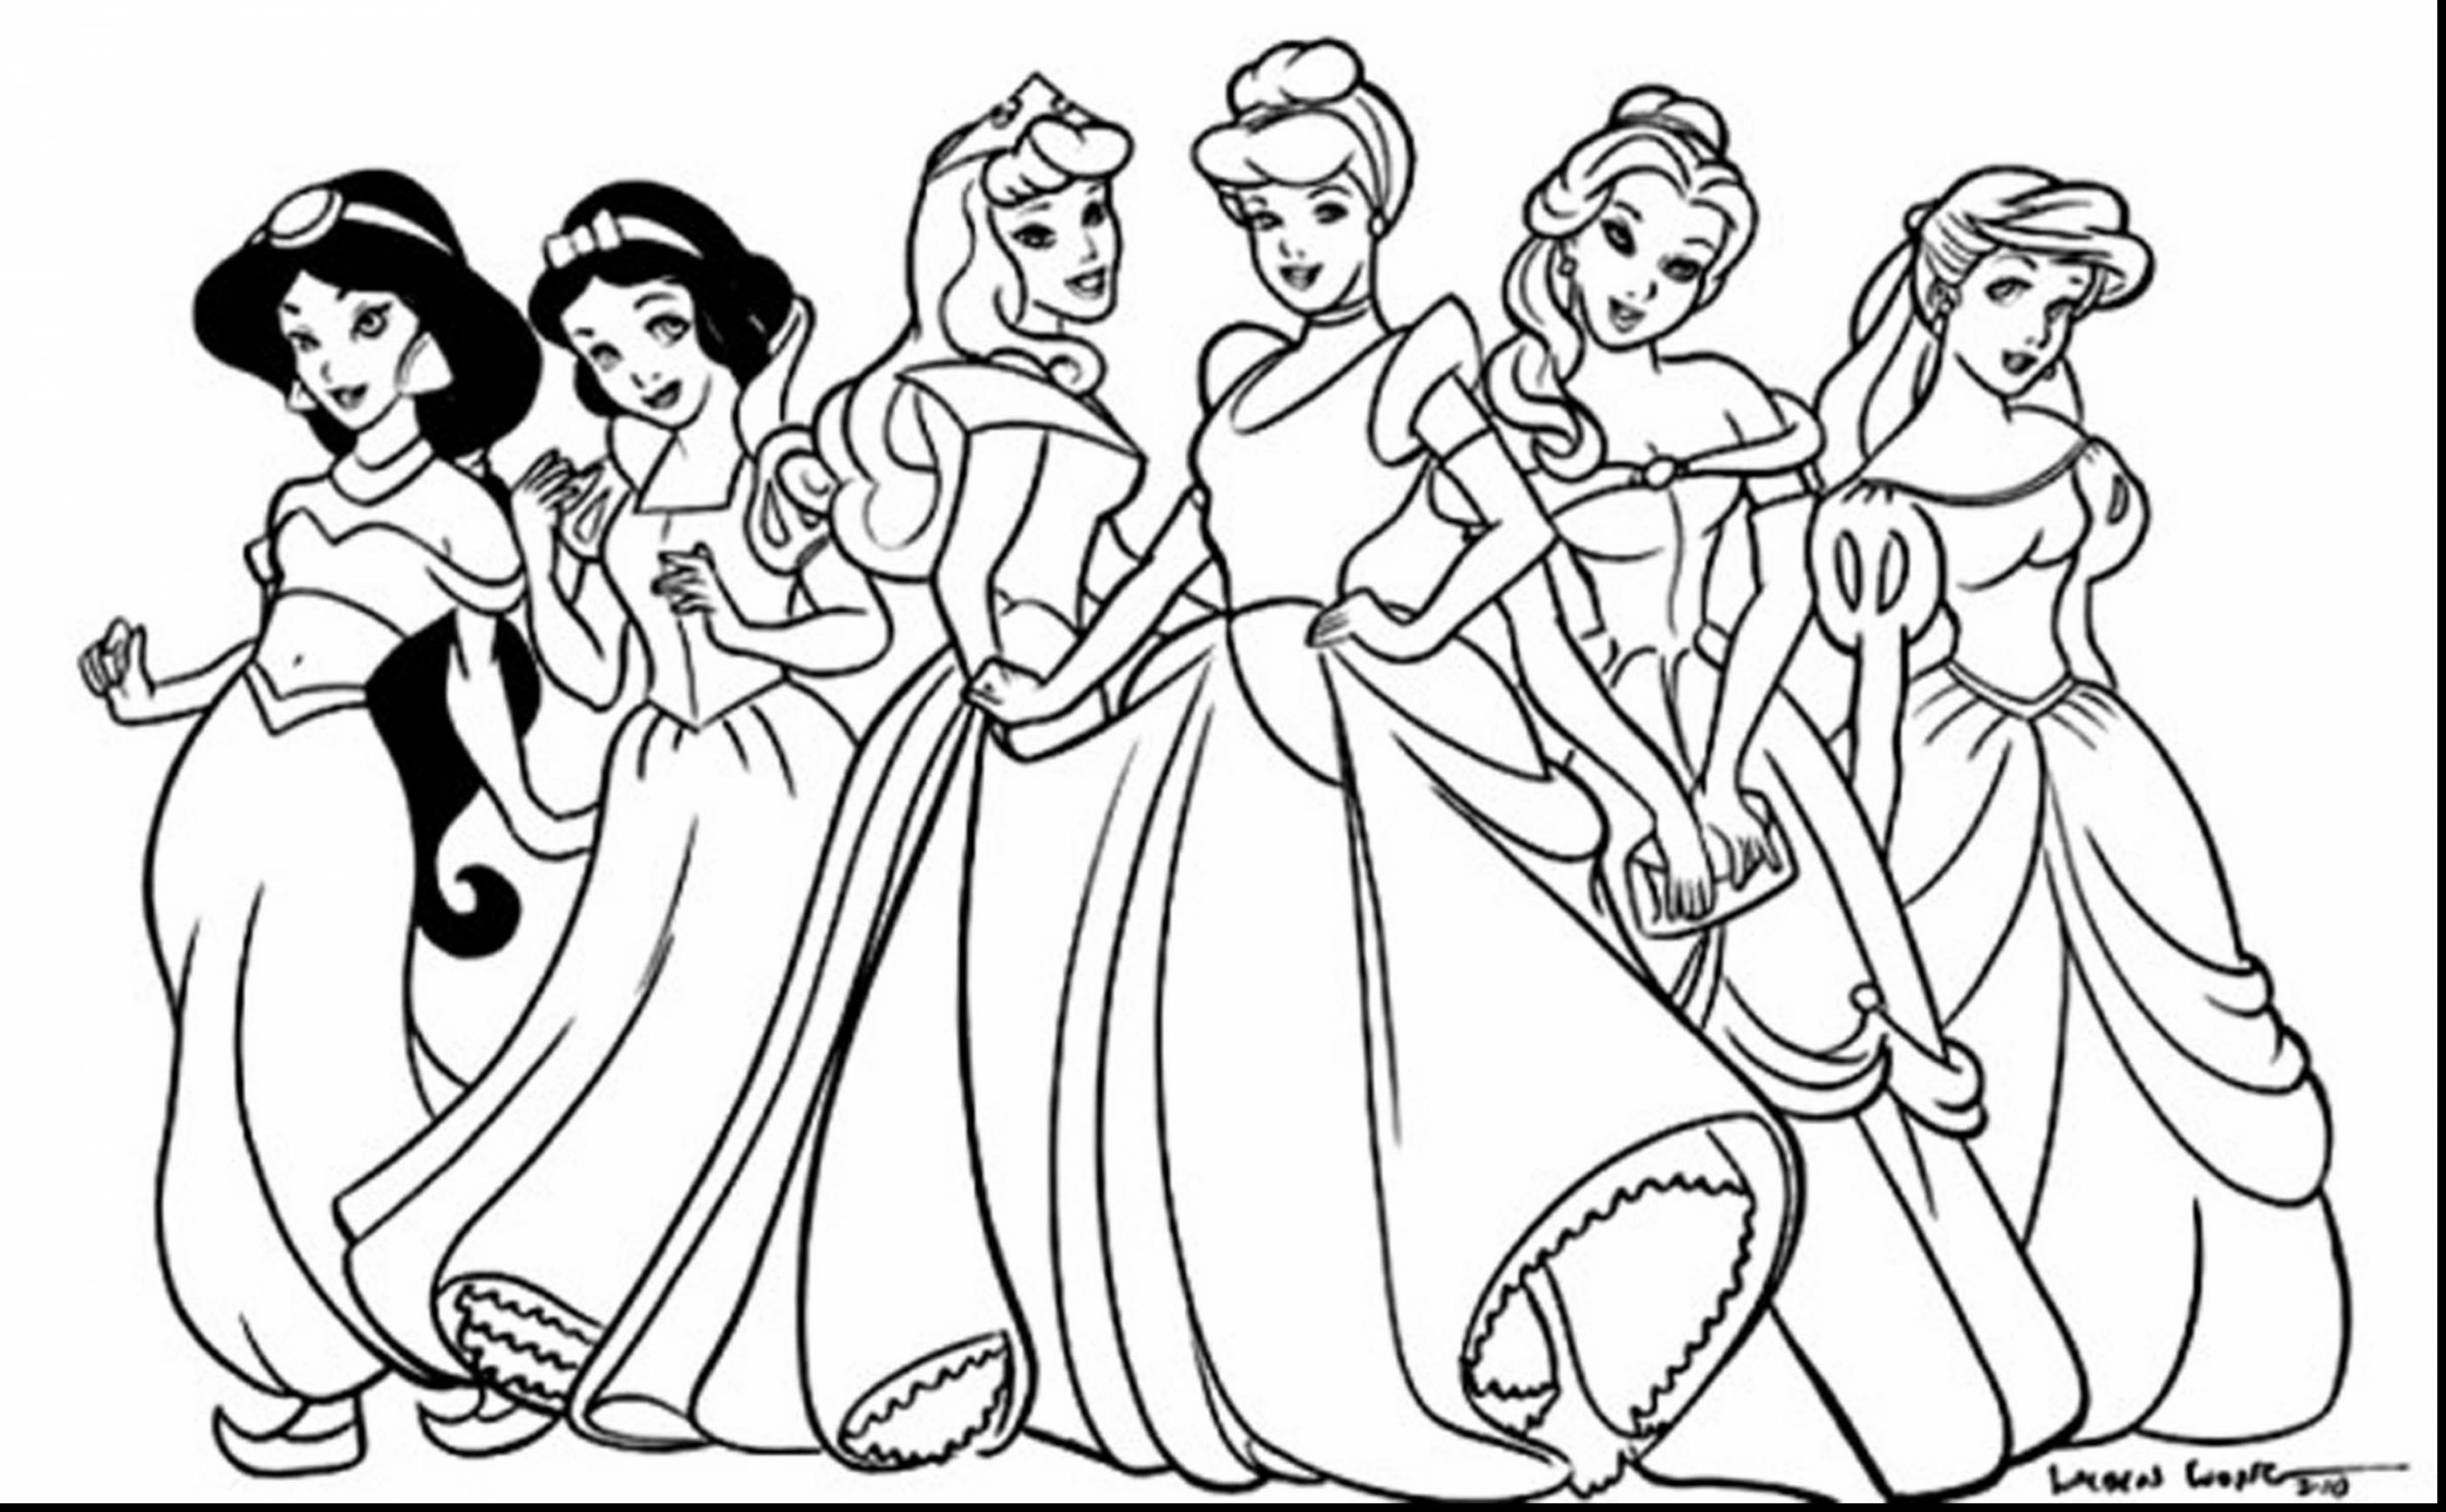 Coloring Pages ~ Disney Princess Coloring Pages To Print Out Free - Free Printable Princess Coloring Pages